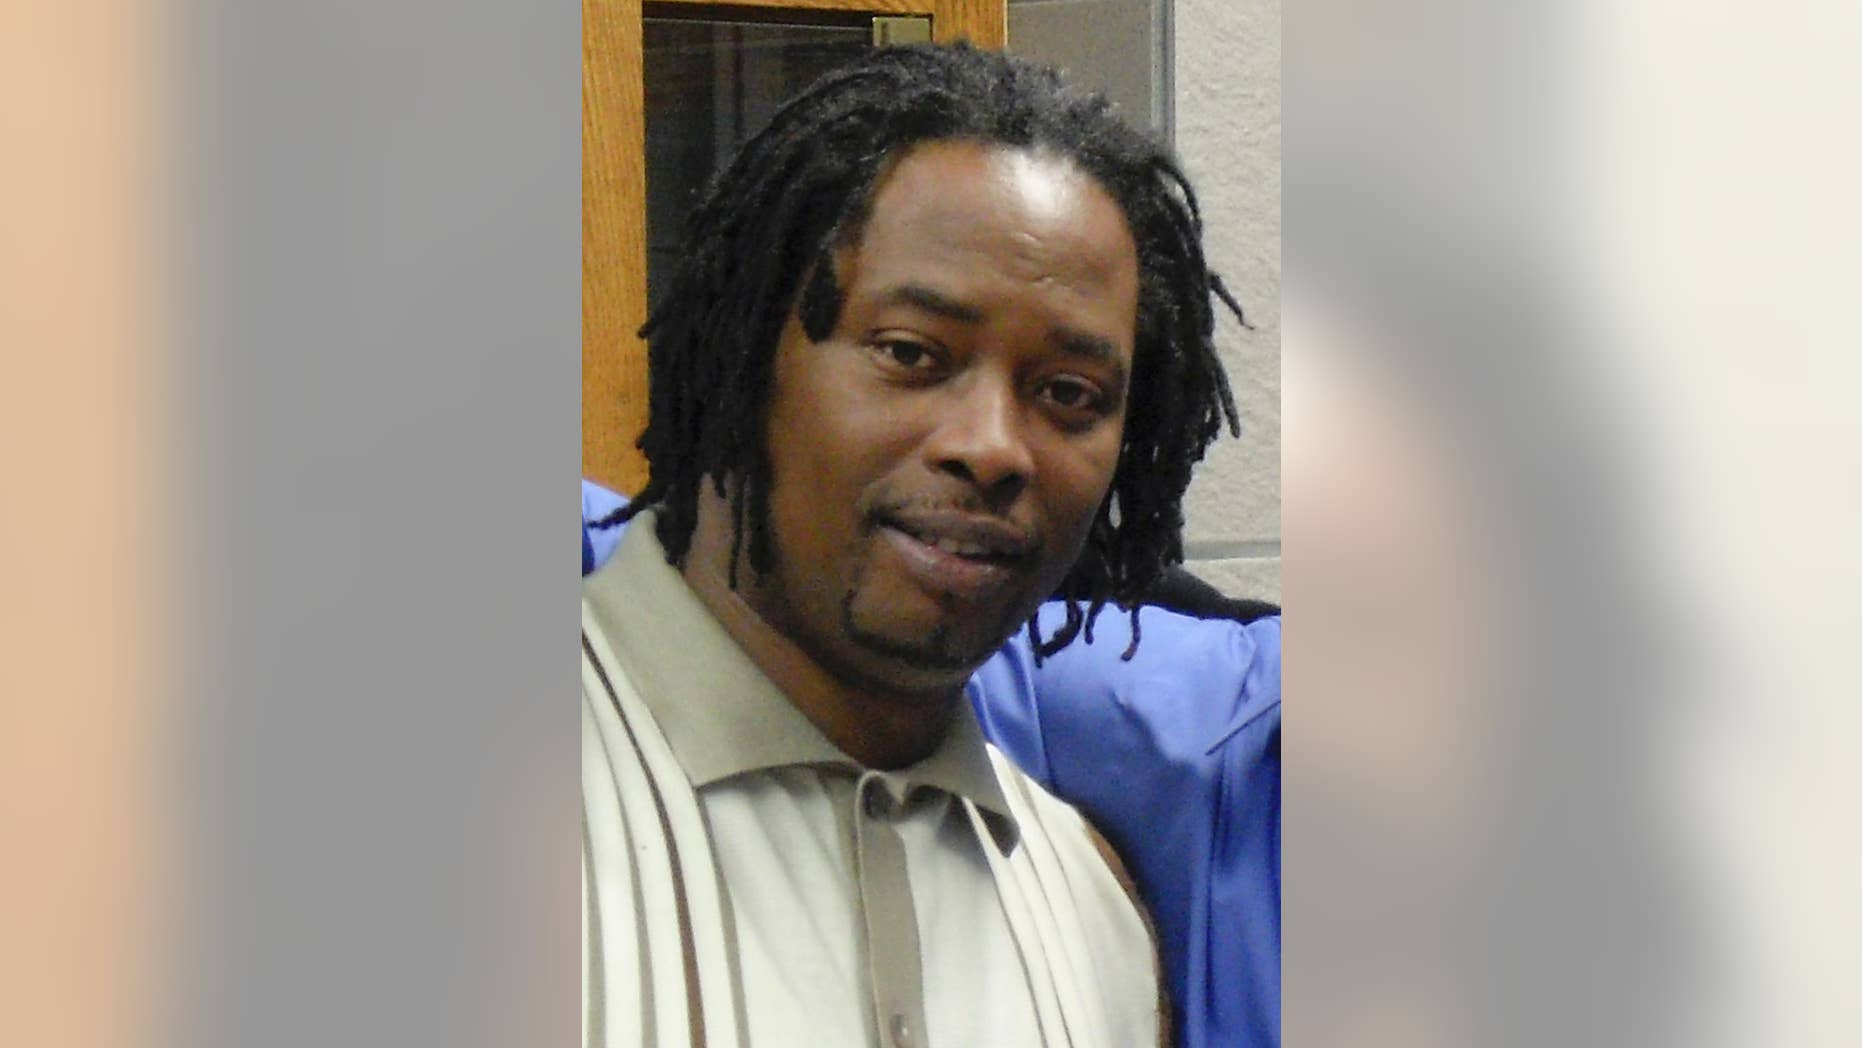 In this undated photo provided by the DuBose family, Samuel DuBose poses for a photo. DuBose was shot and killed by former University of Cincinnati police officer Ray Tensing during a traffic stop on July 19. Tensing has been indicted on a murder charge. (Courtesy of DuBose family via AP)